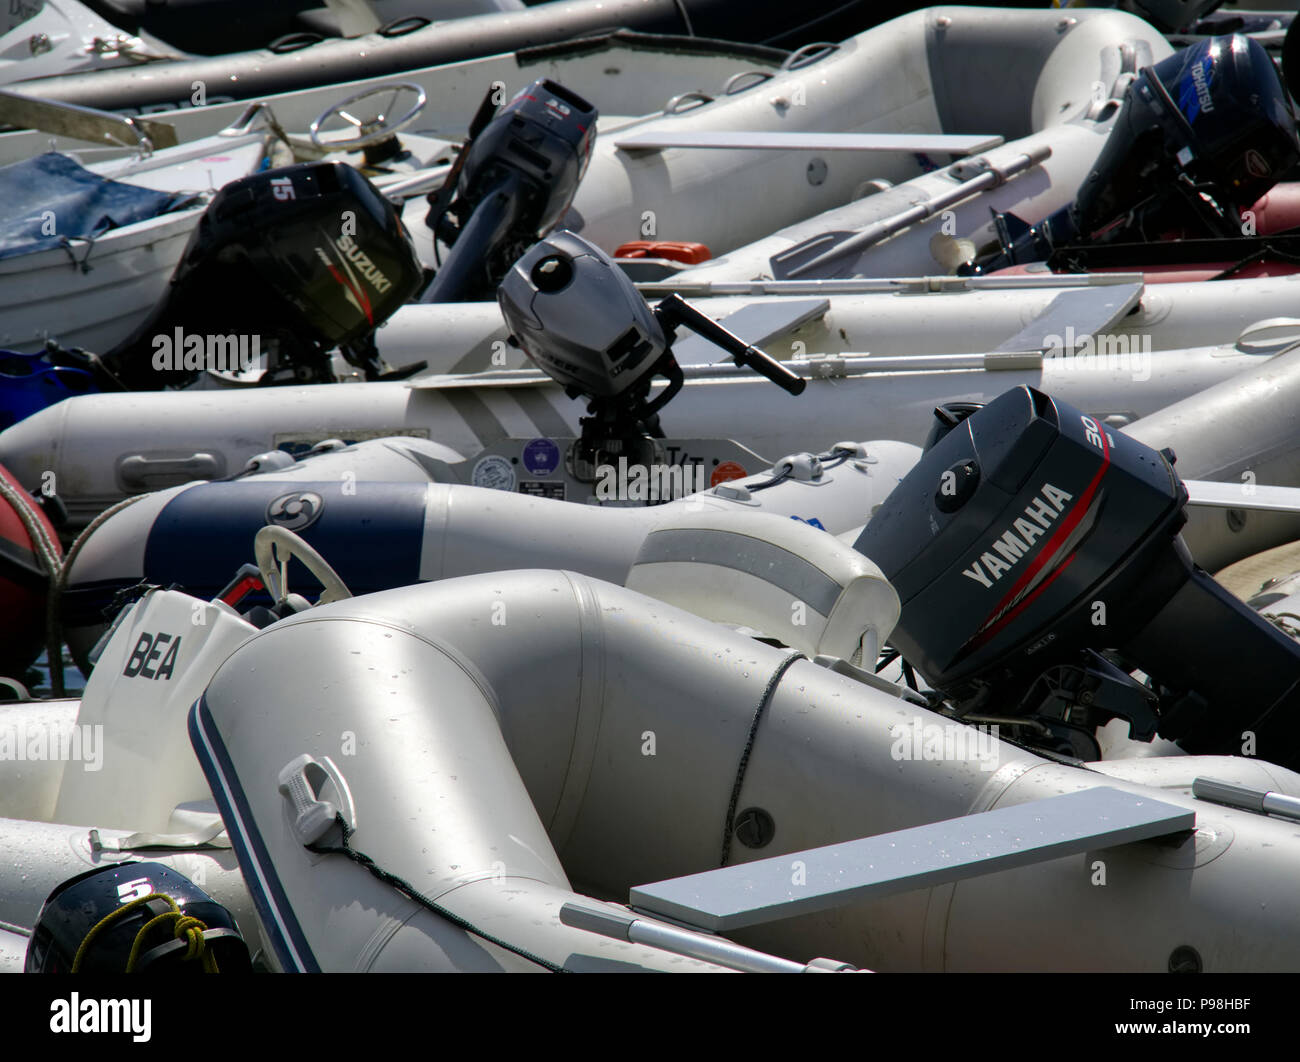 A jumble of RIBs, Rigid Inflatable Boats, with large outboard motors being used as hire boats in Salcombe, Devon. - Stock Image